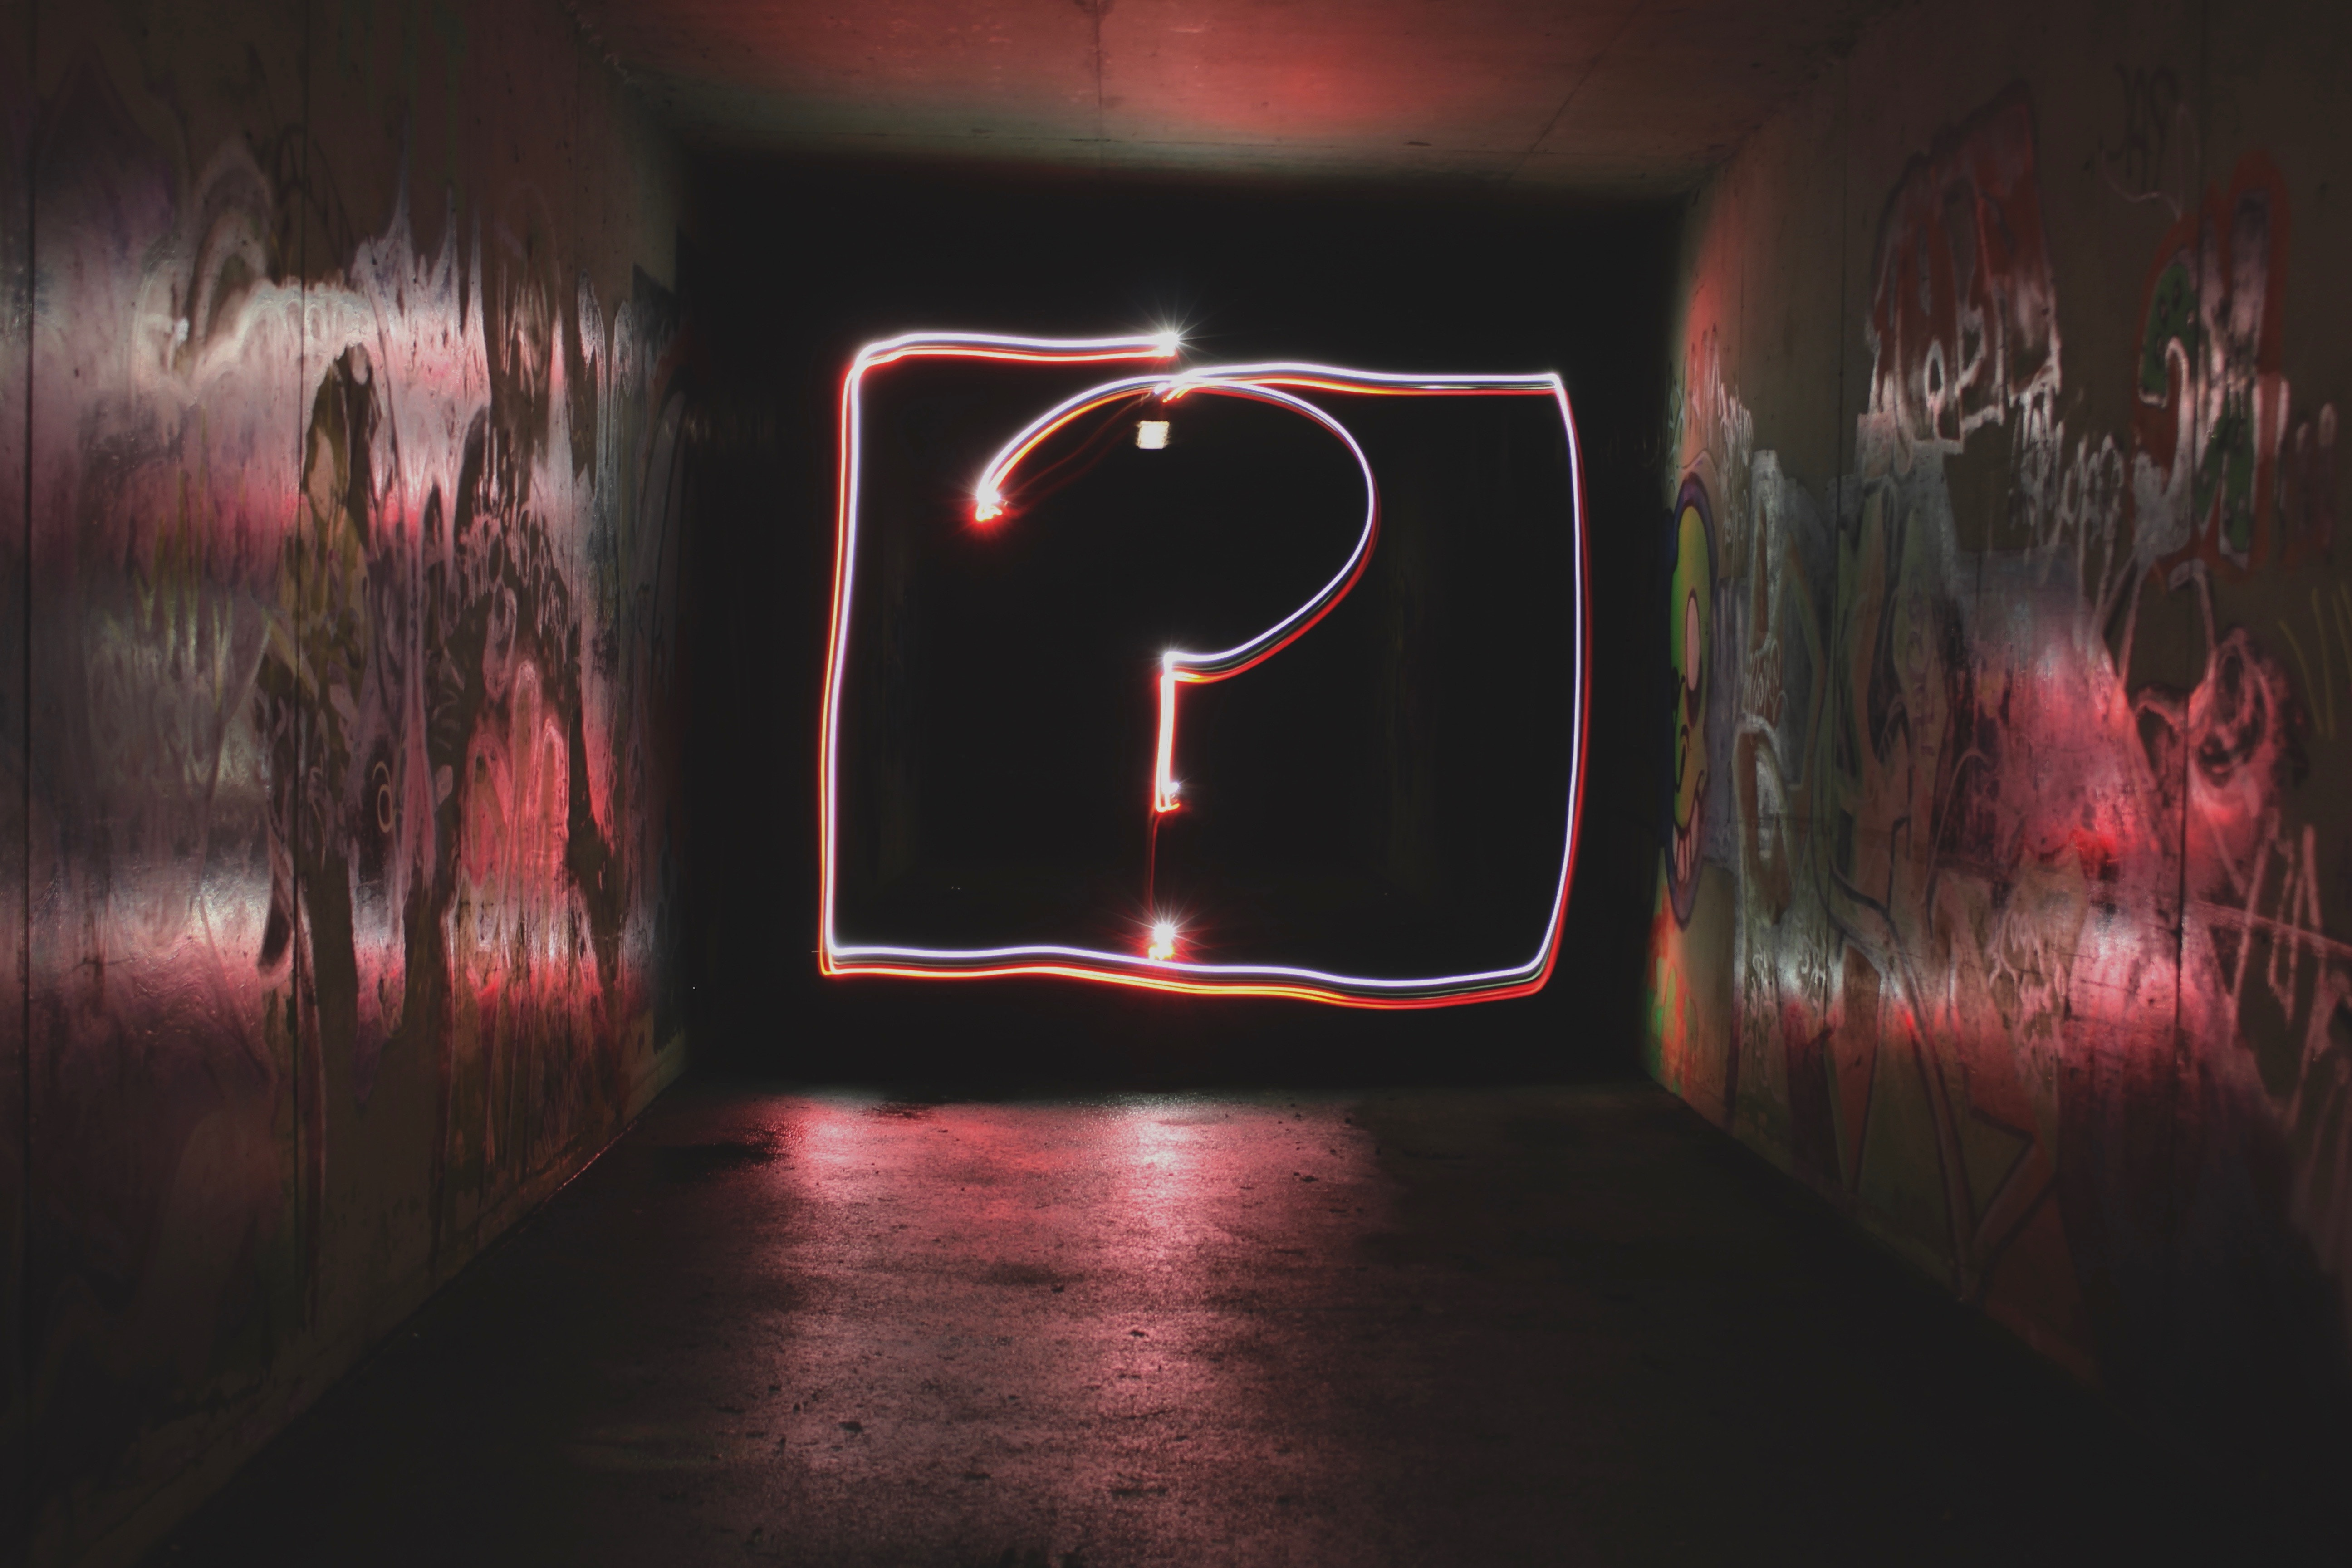 Neon lights in the shape of a question mark in a graffitied tunnel